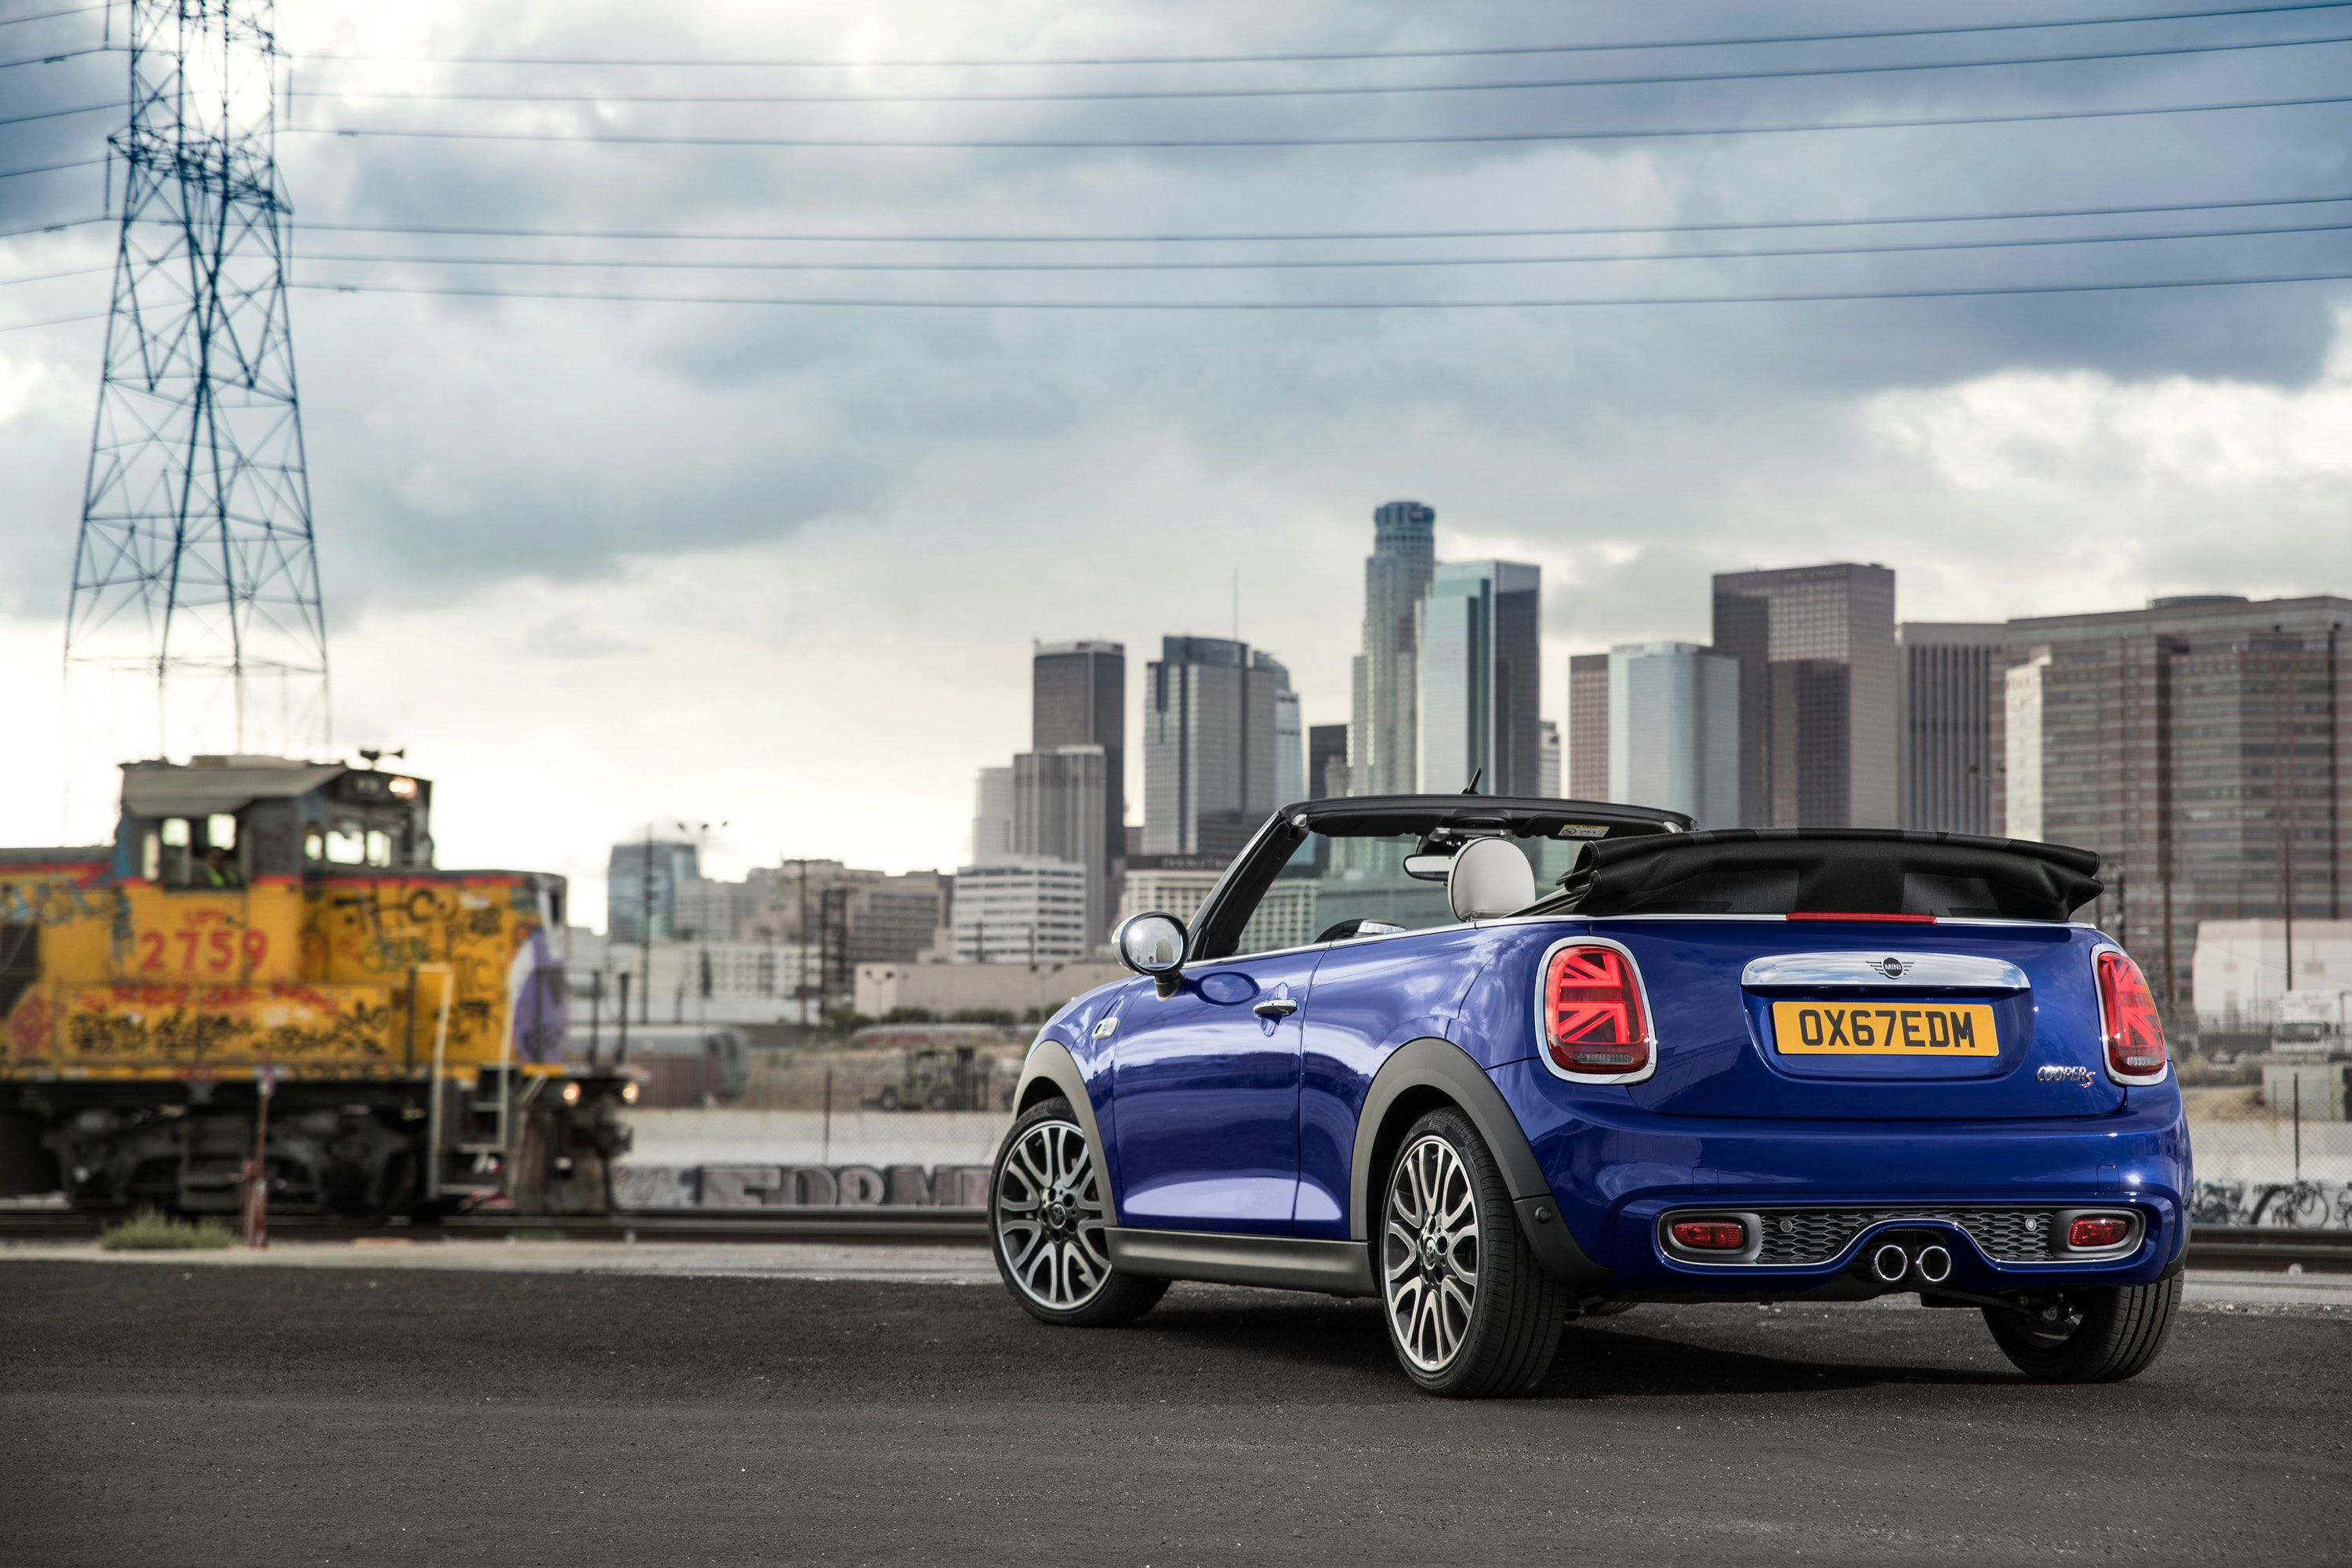 Blue mini parked by buildings